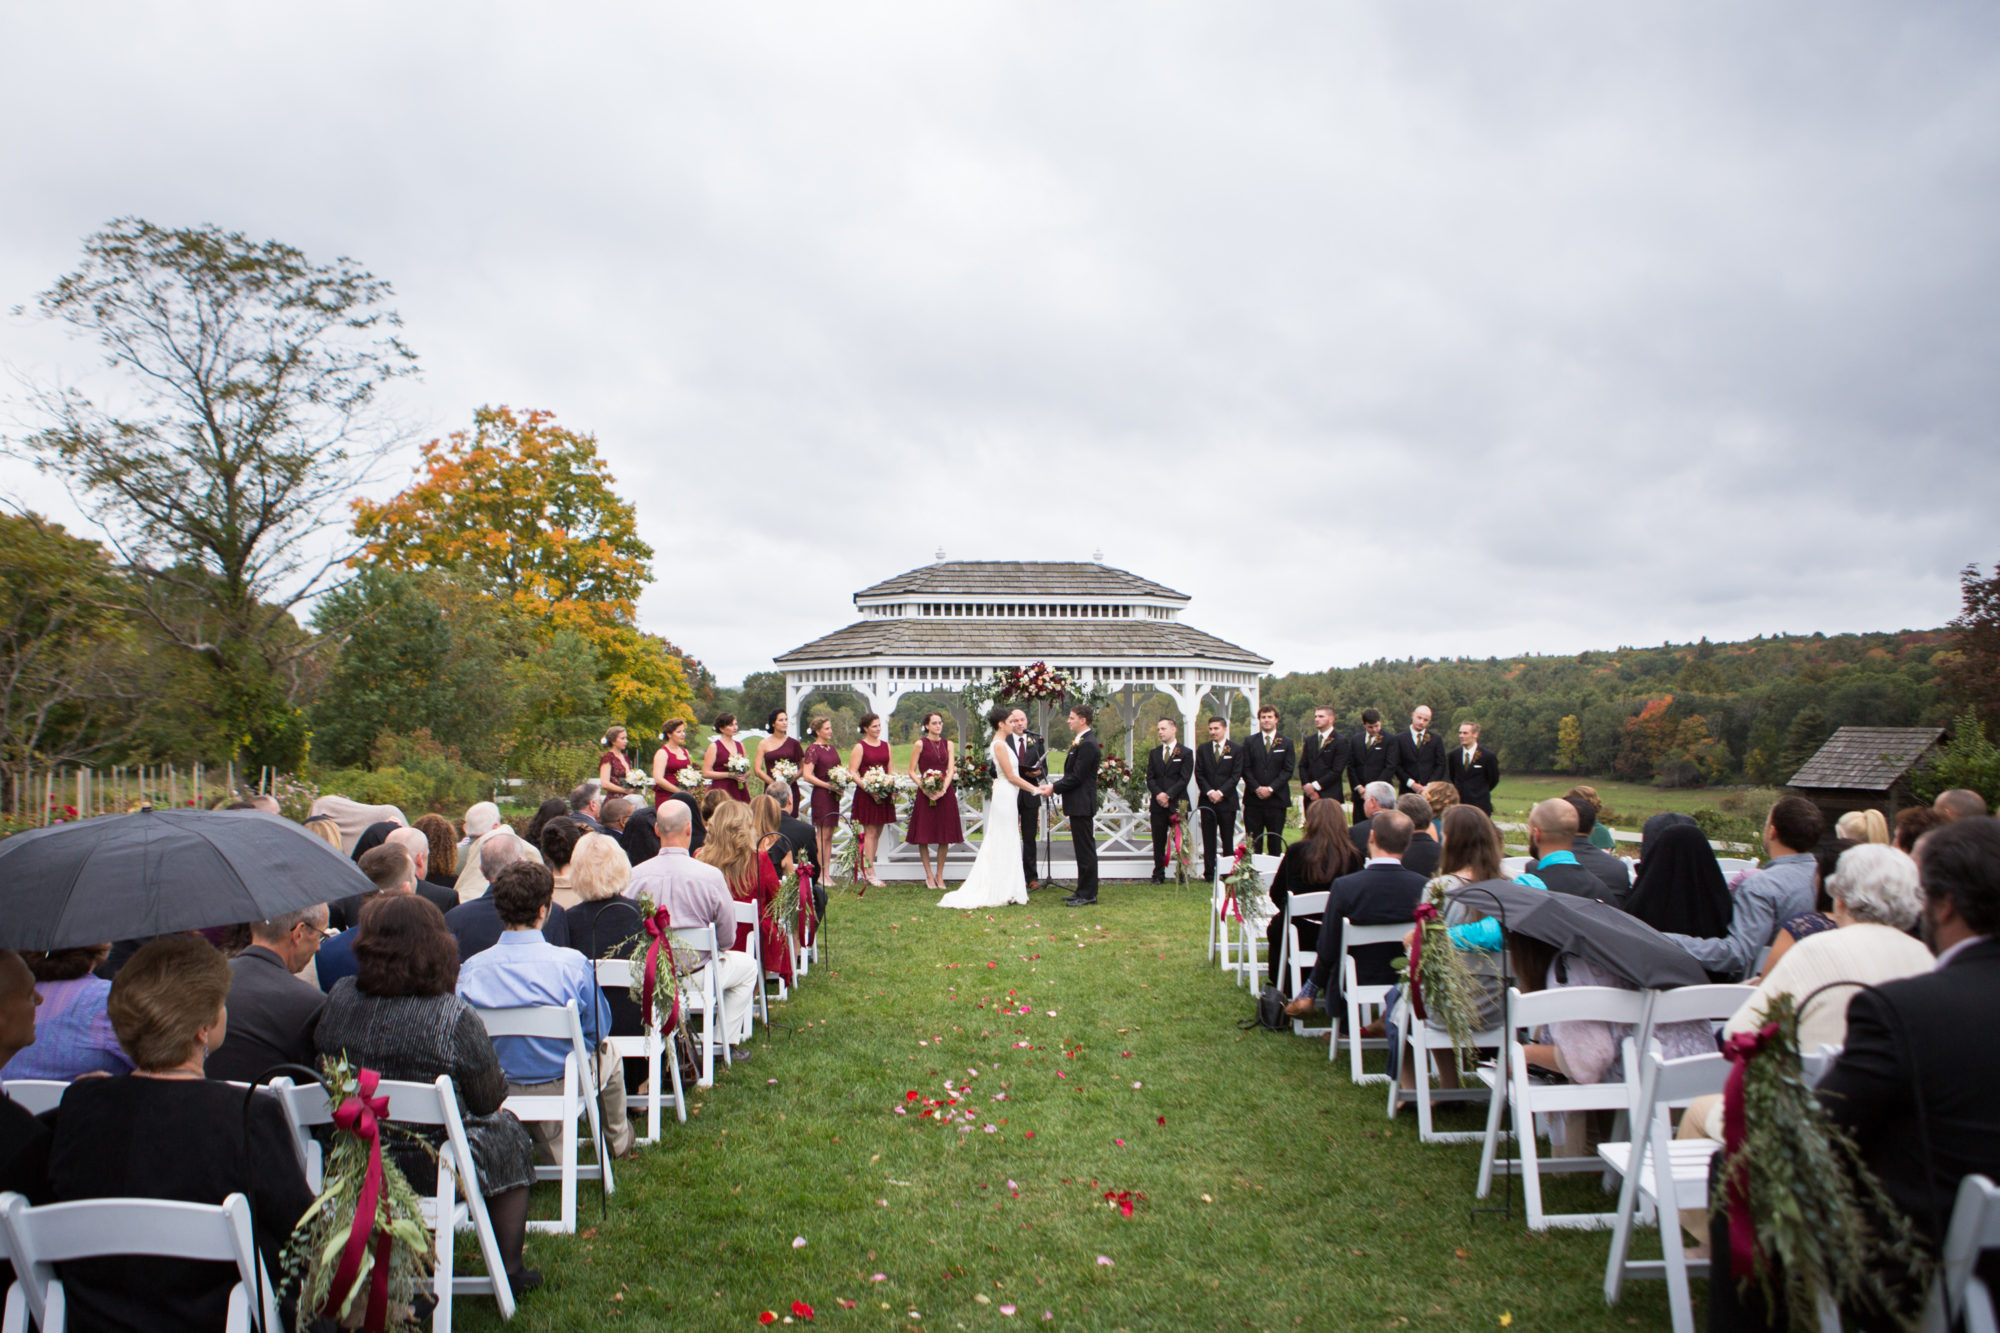 Outdoor Ceremony Gazebo Wedding Massachusetts Zsuzsi Pal Photography Destination